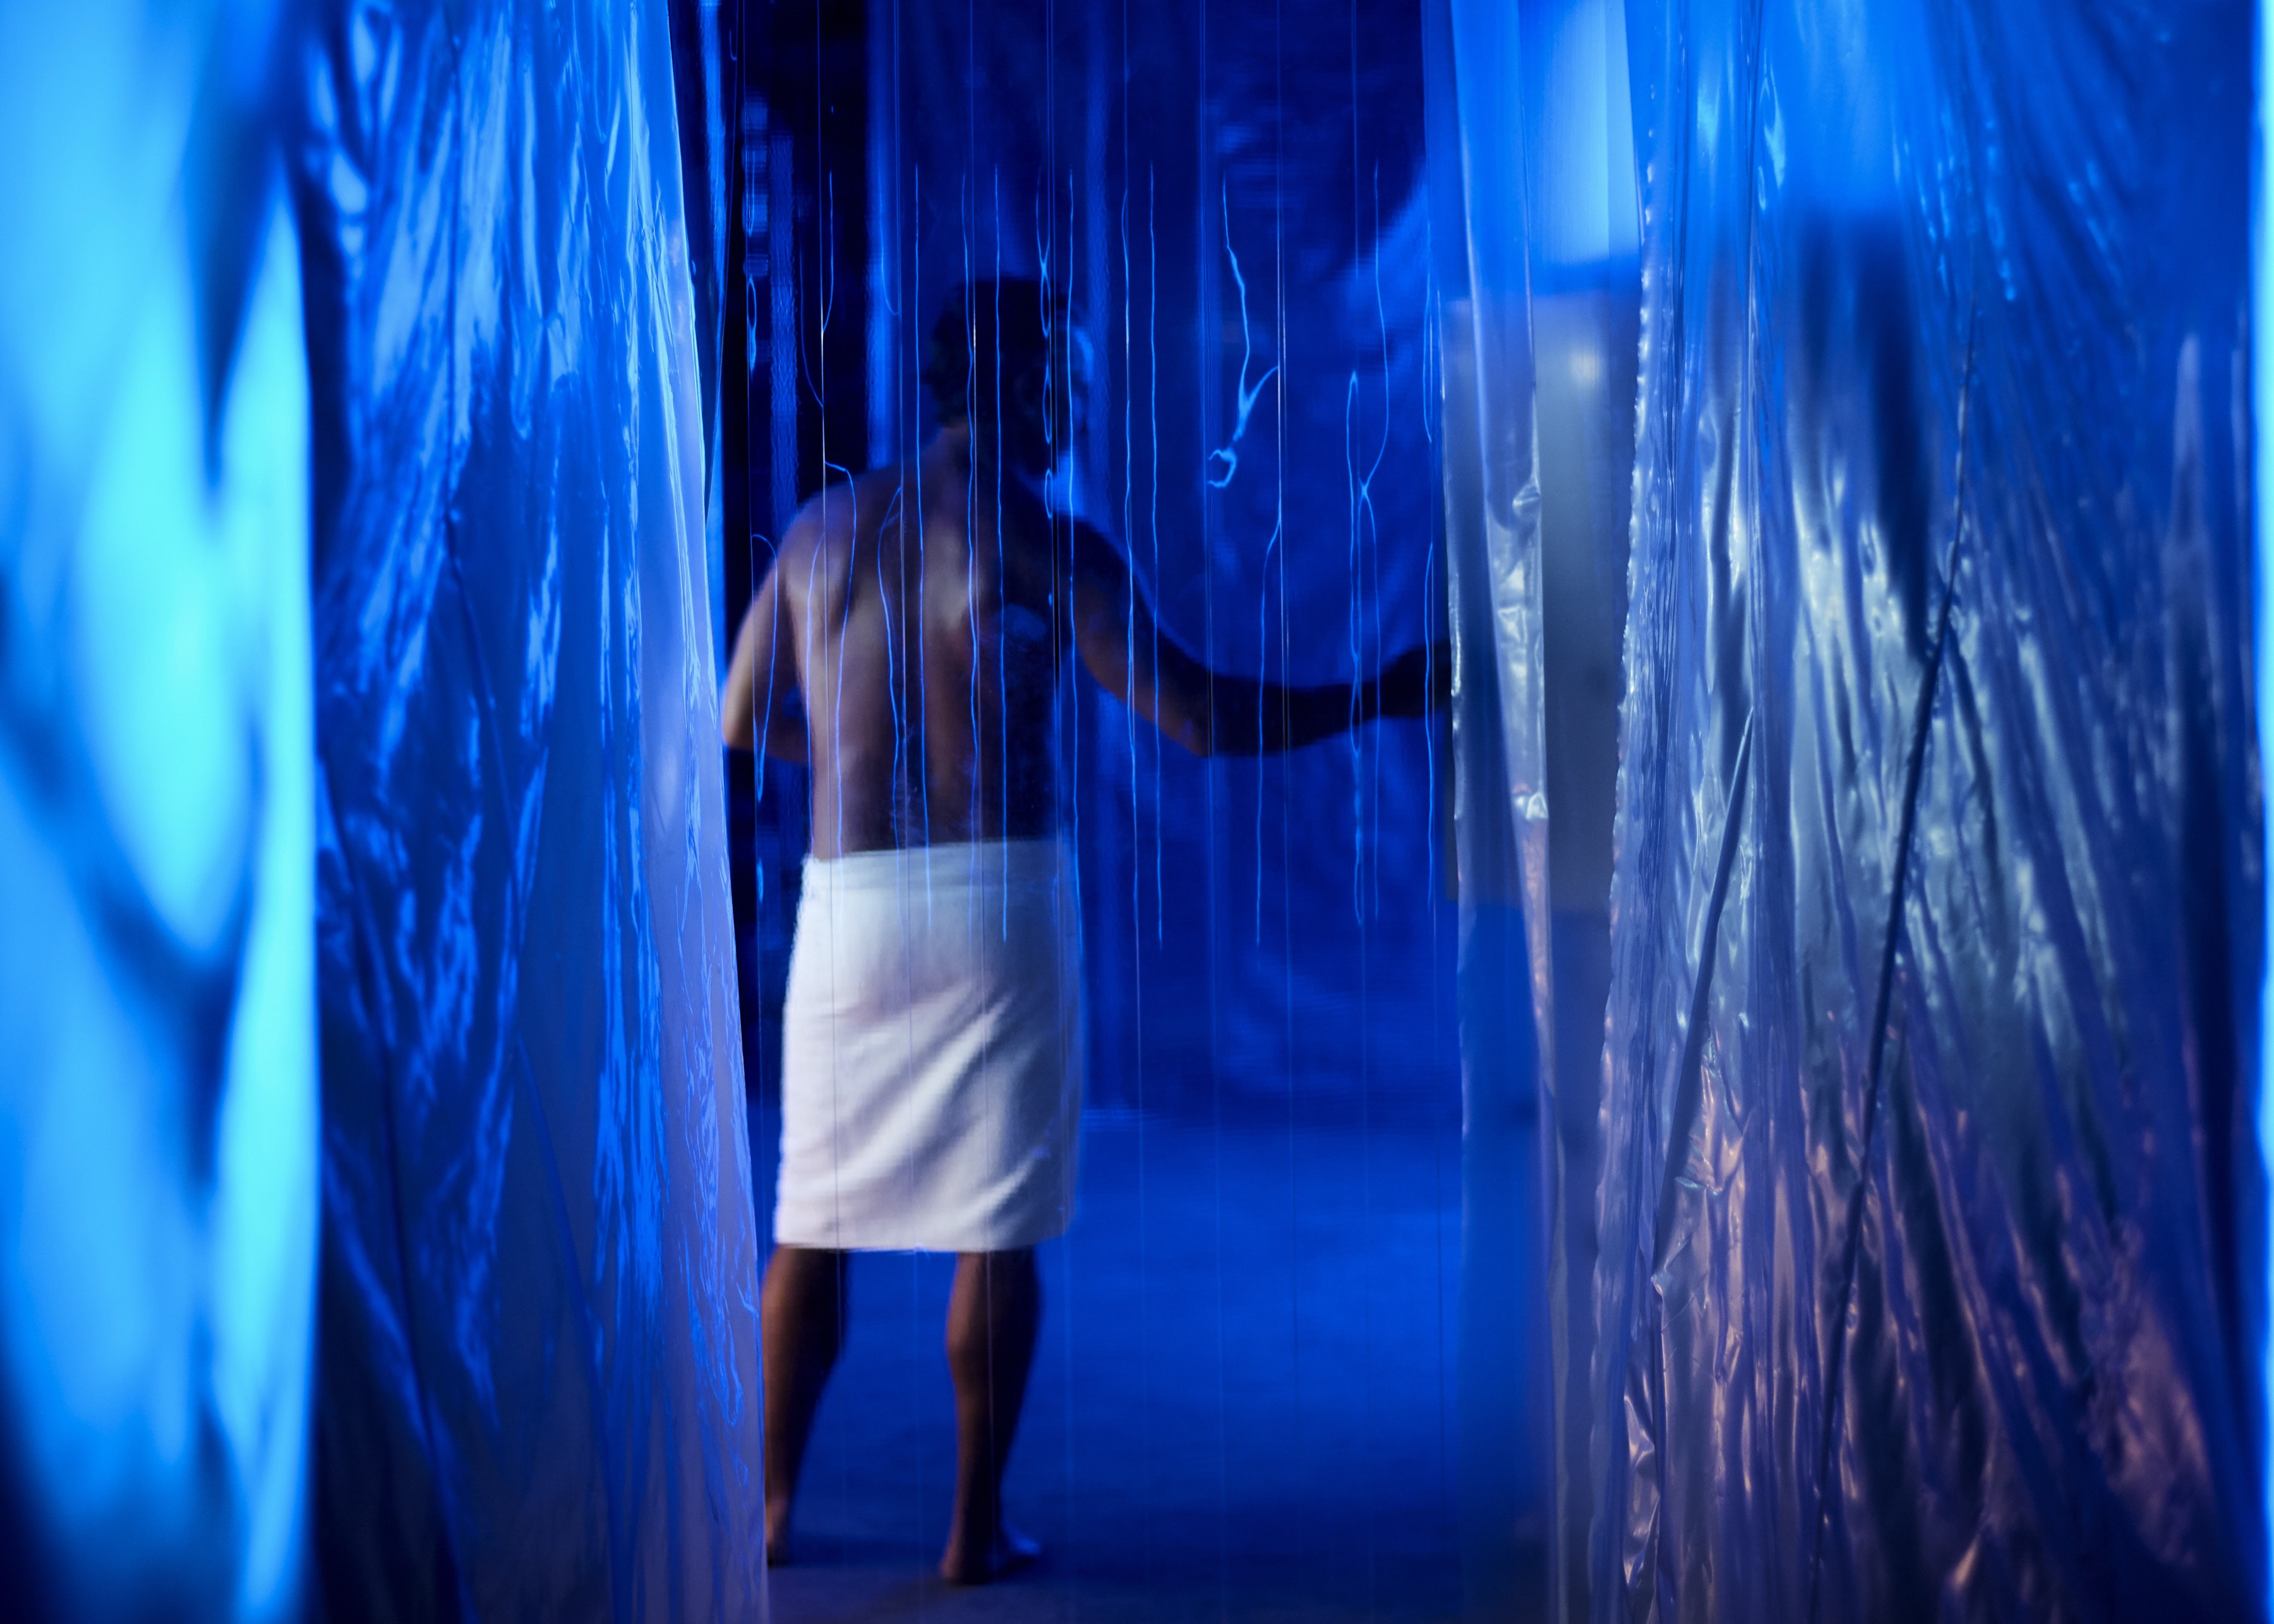 Reinventing Queer Cinema: Sequin in a Blue Room